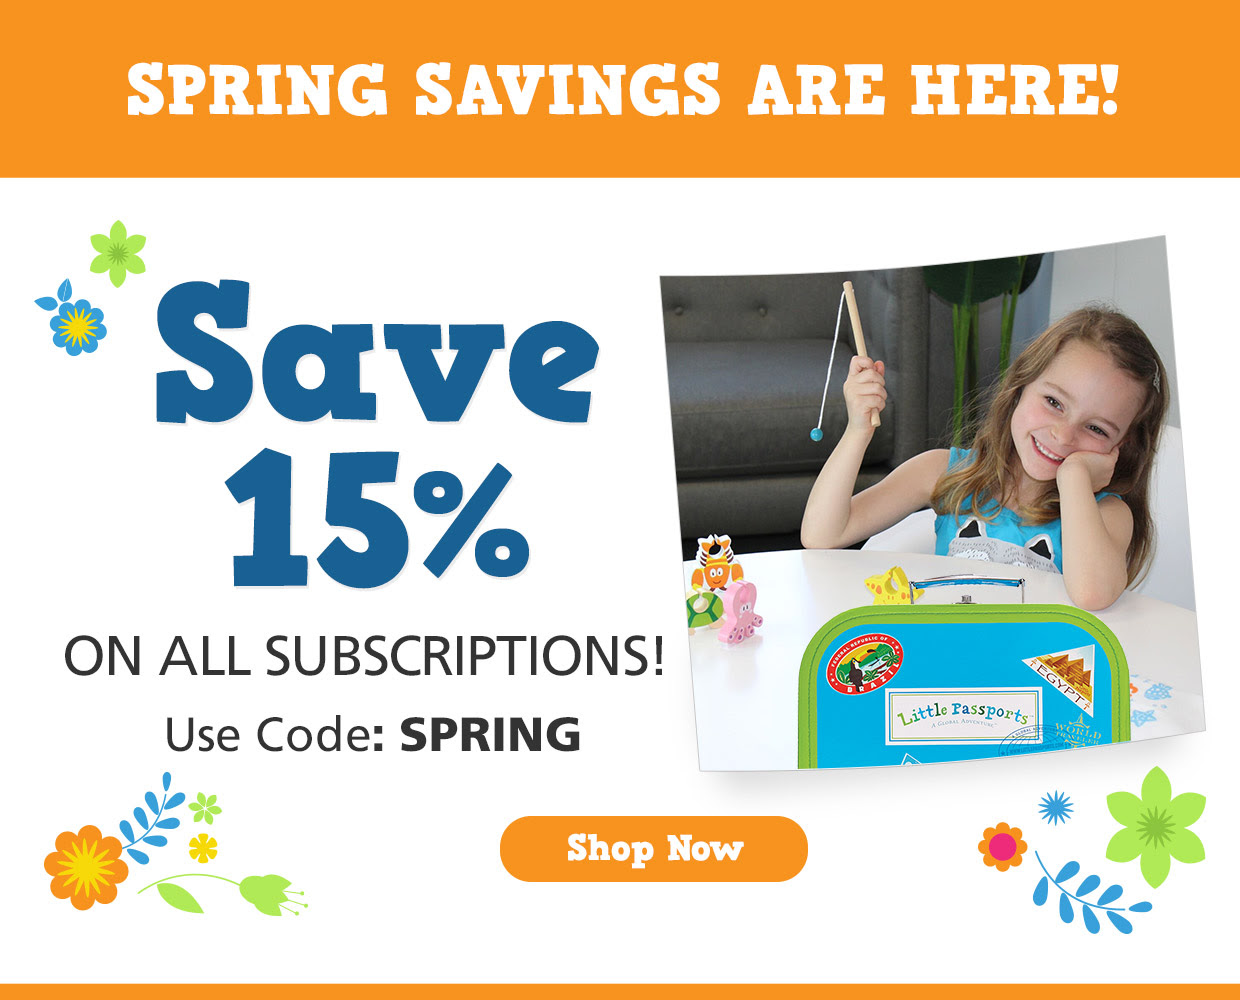 Save 15% on All subscriptions.